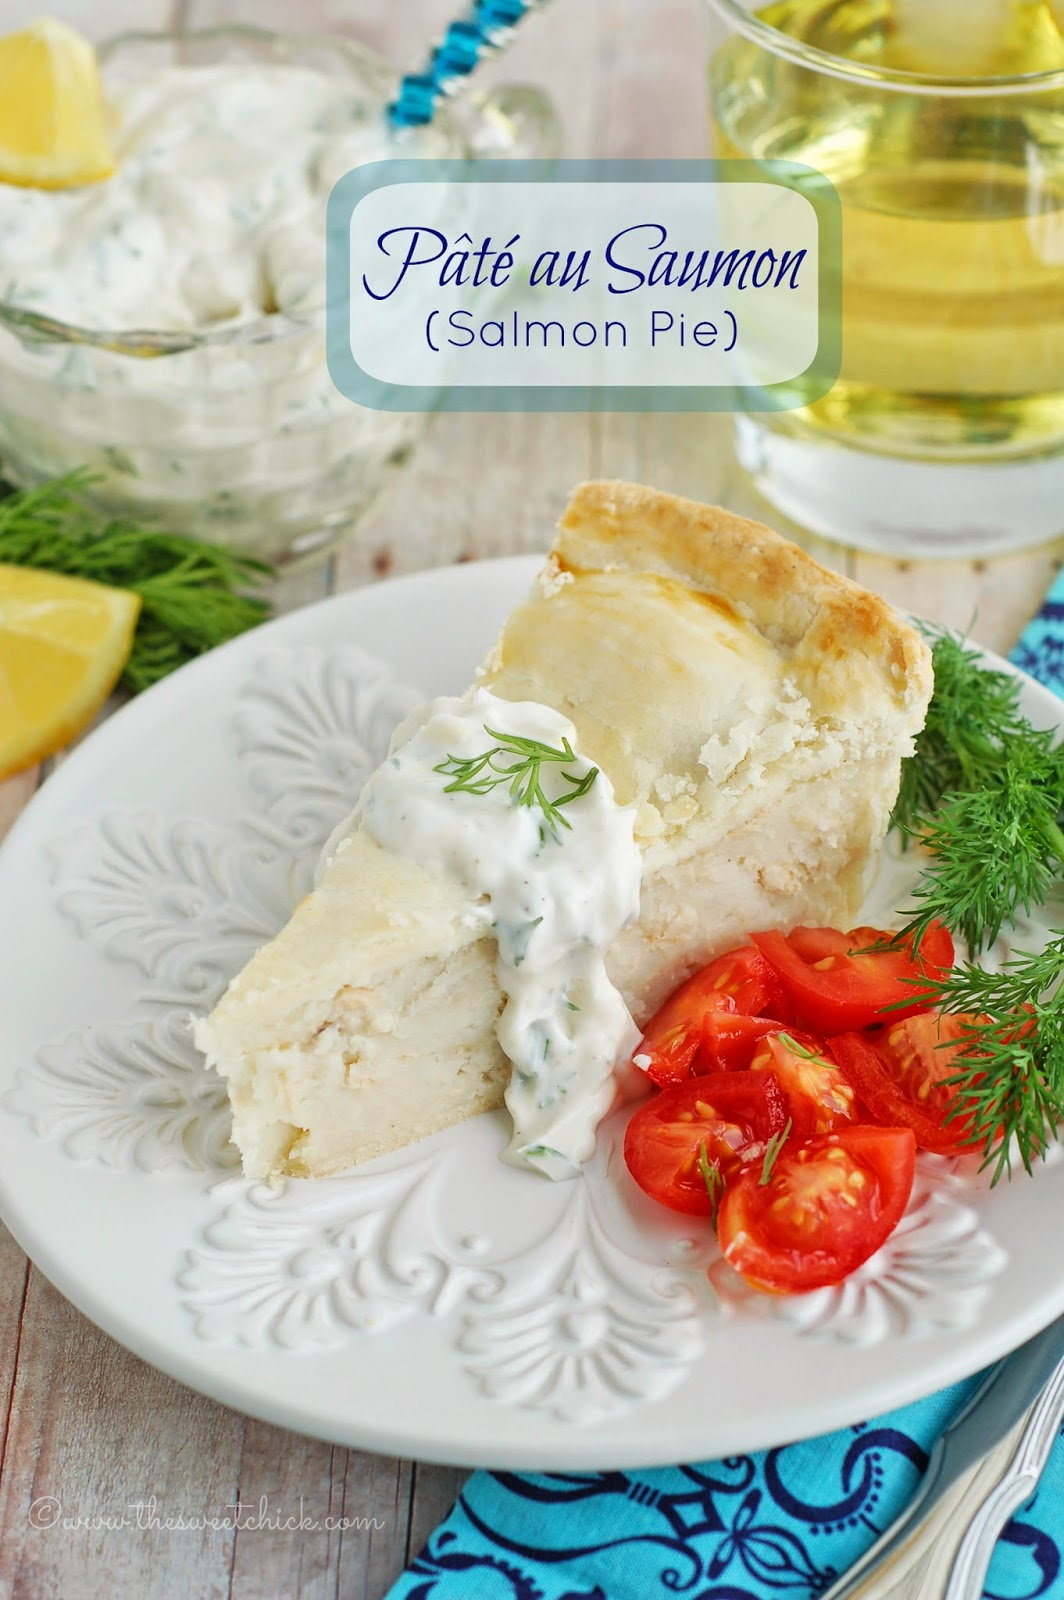 Pate au Saumon(Salmon Pie) by The Sweet Chick